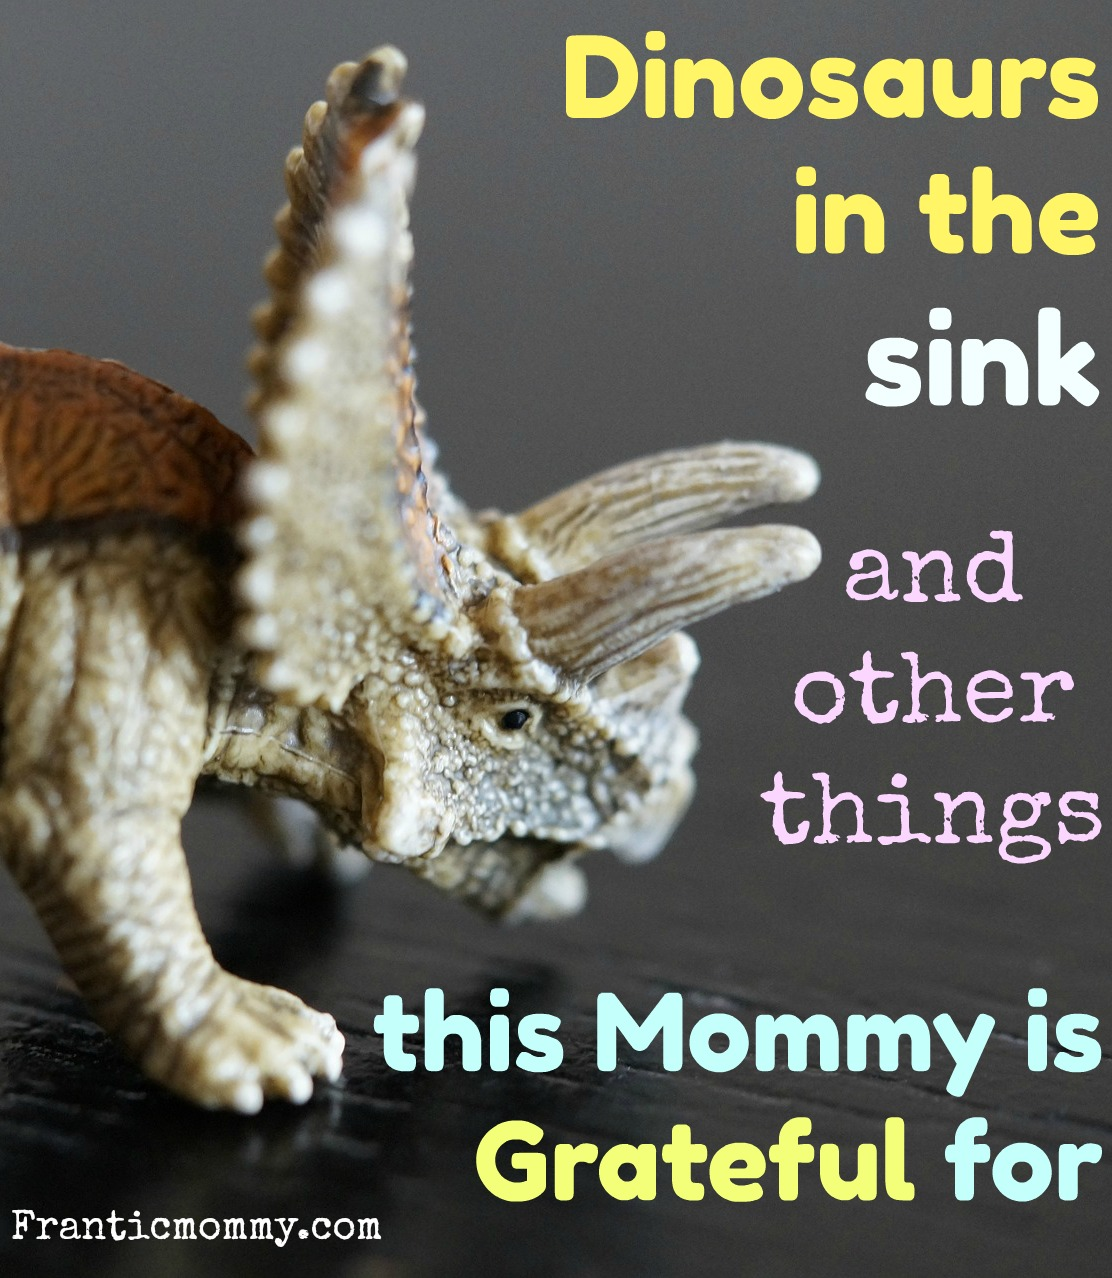 Dinosaurs in the Sink and other Things this Mommy is Grateful for